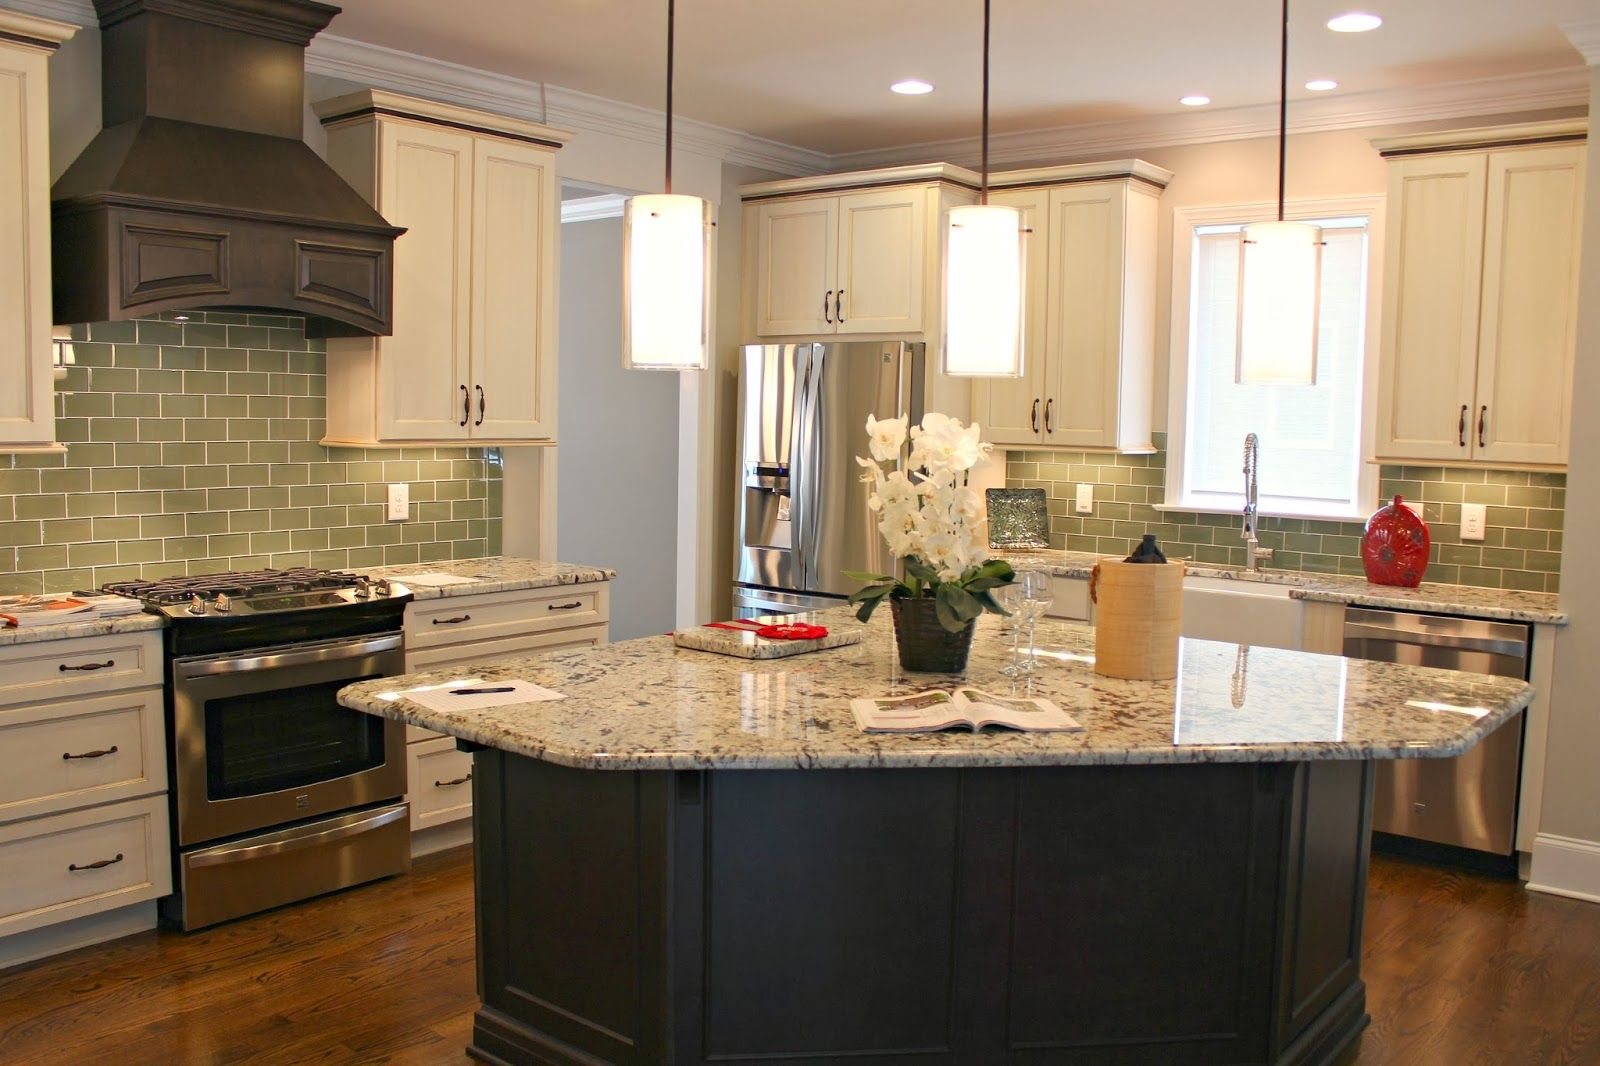 Kitchen Triangle With Island triangular kitchen islands with seating | kitchen-fascinating